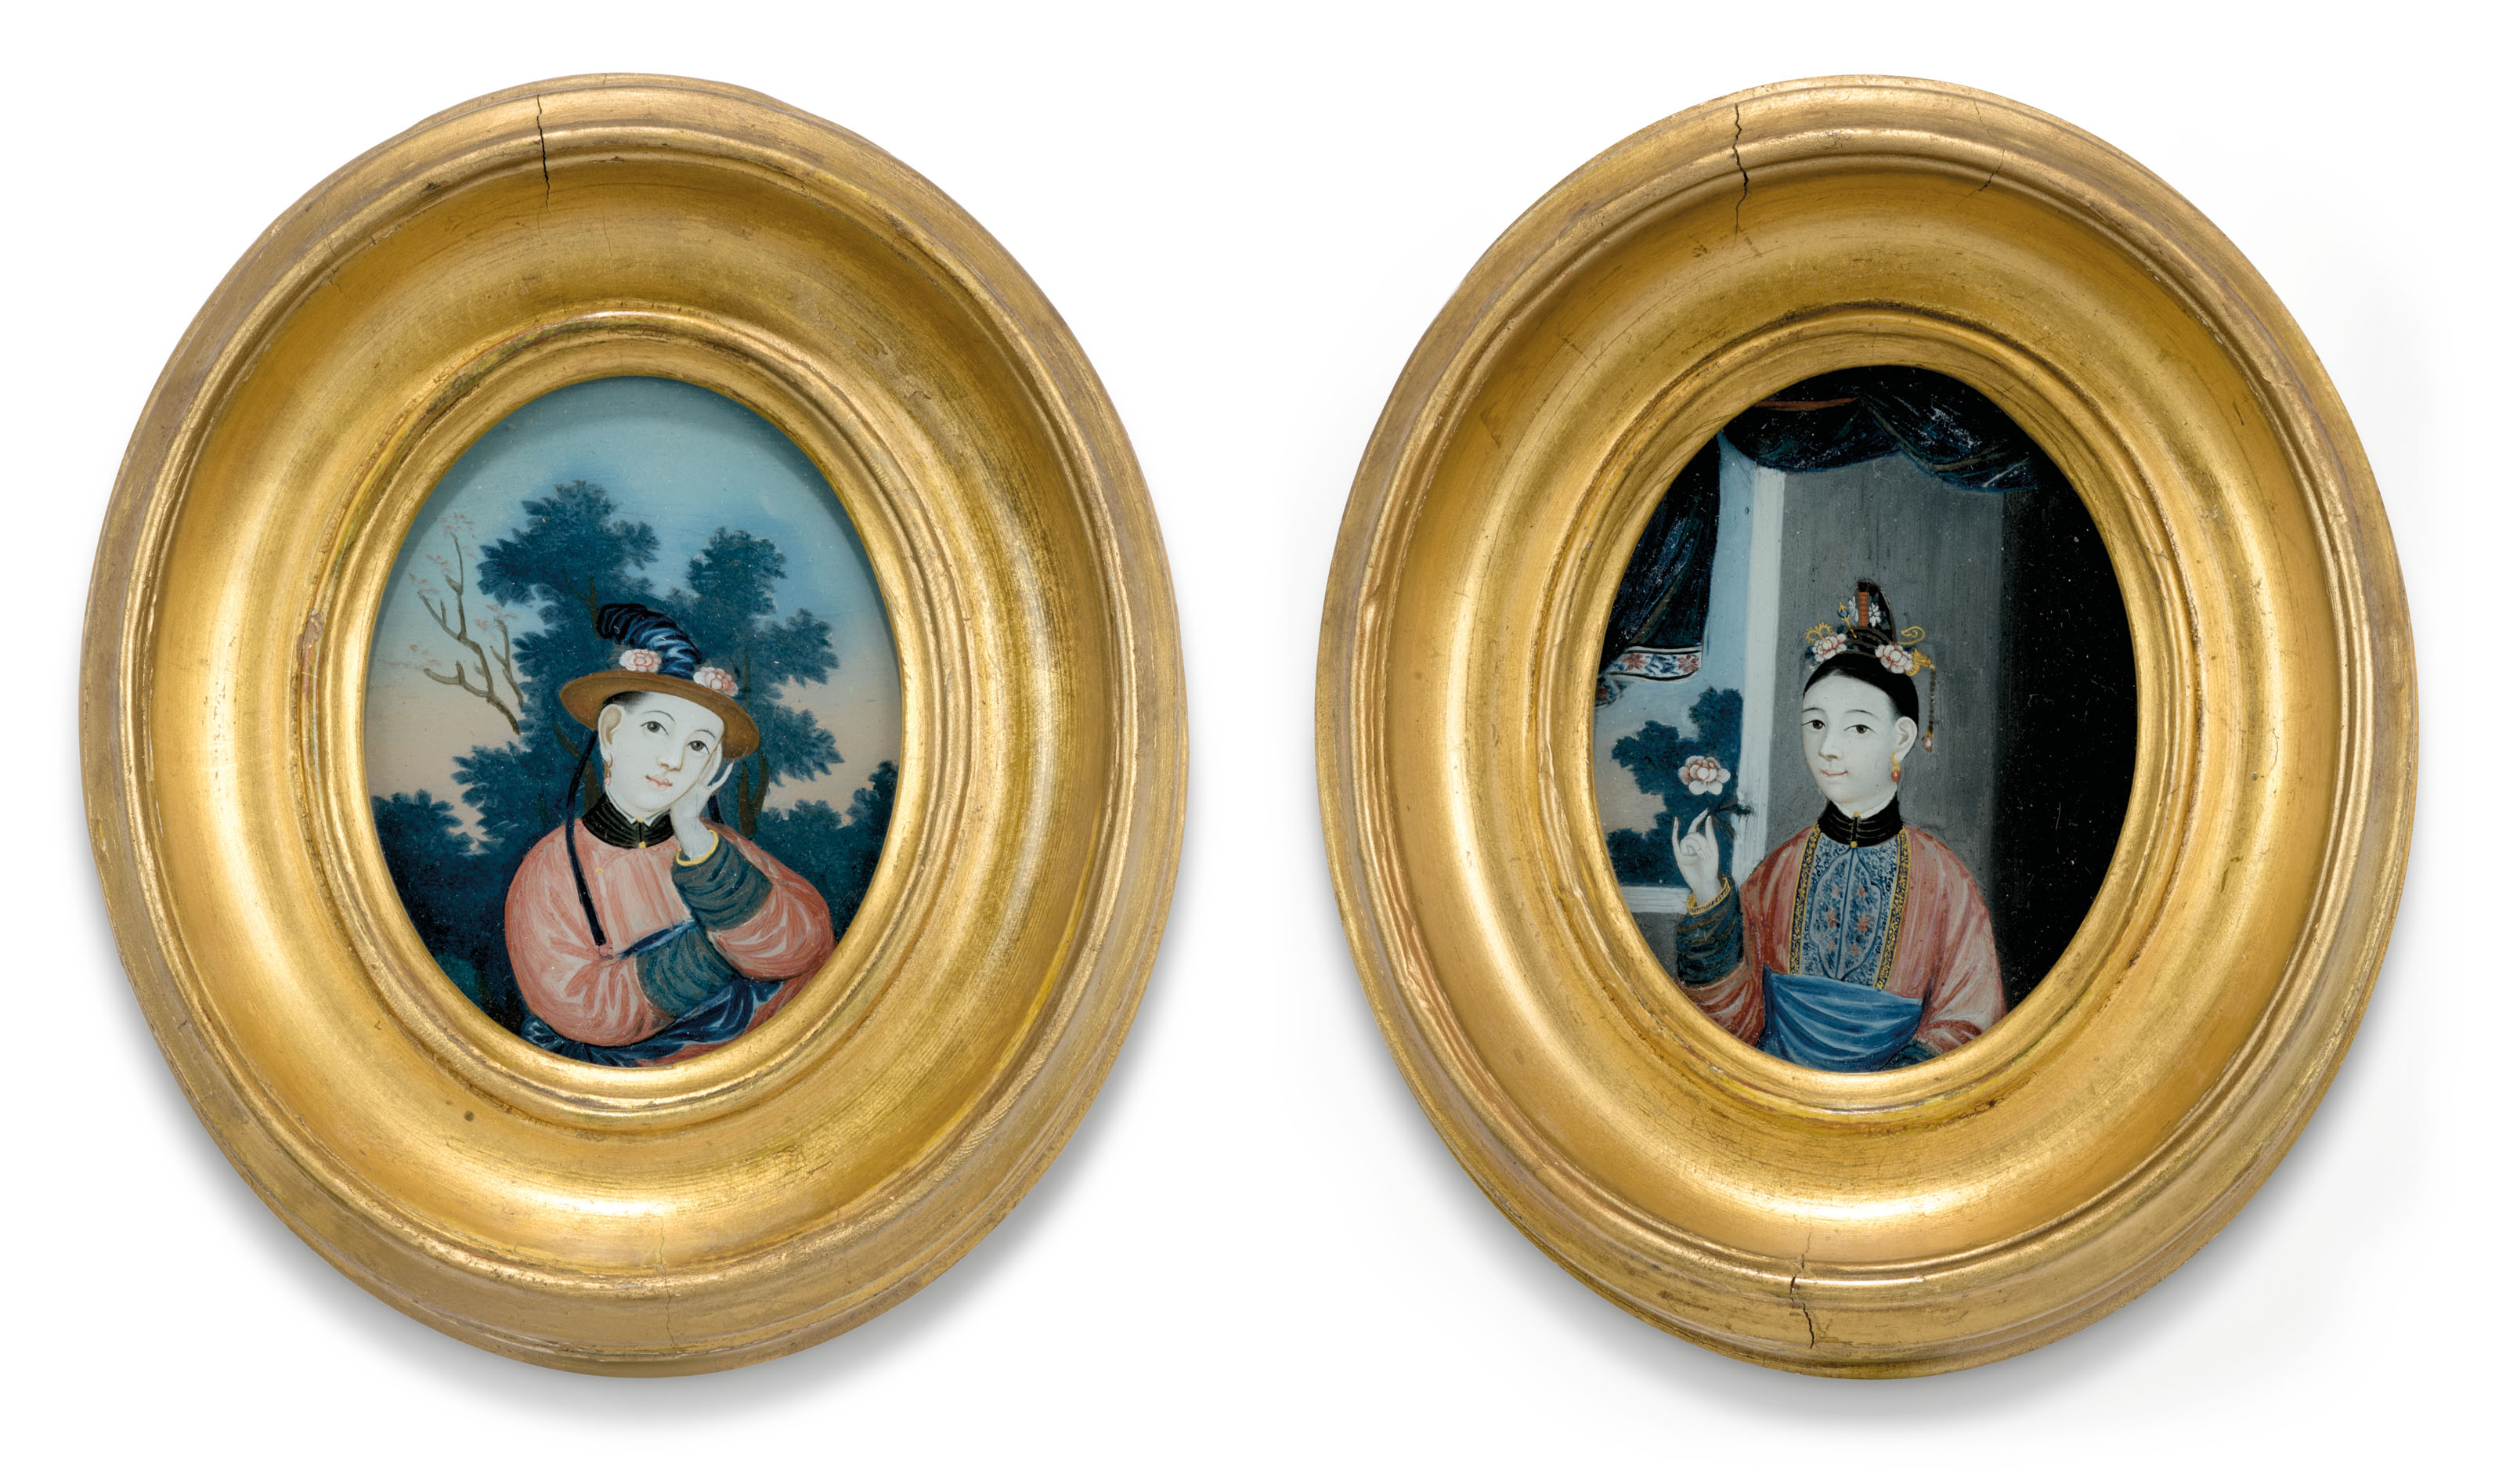 A PAIR OF CHINESE EXPORT OVAL REVERSE-GLASS PAINTINGS